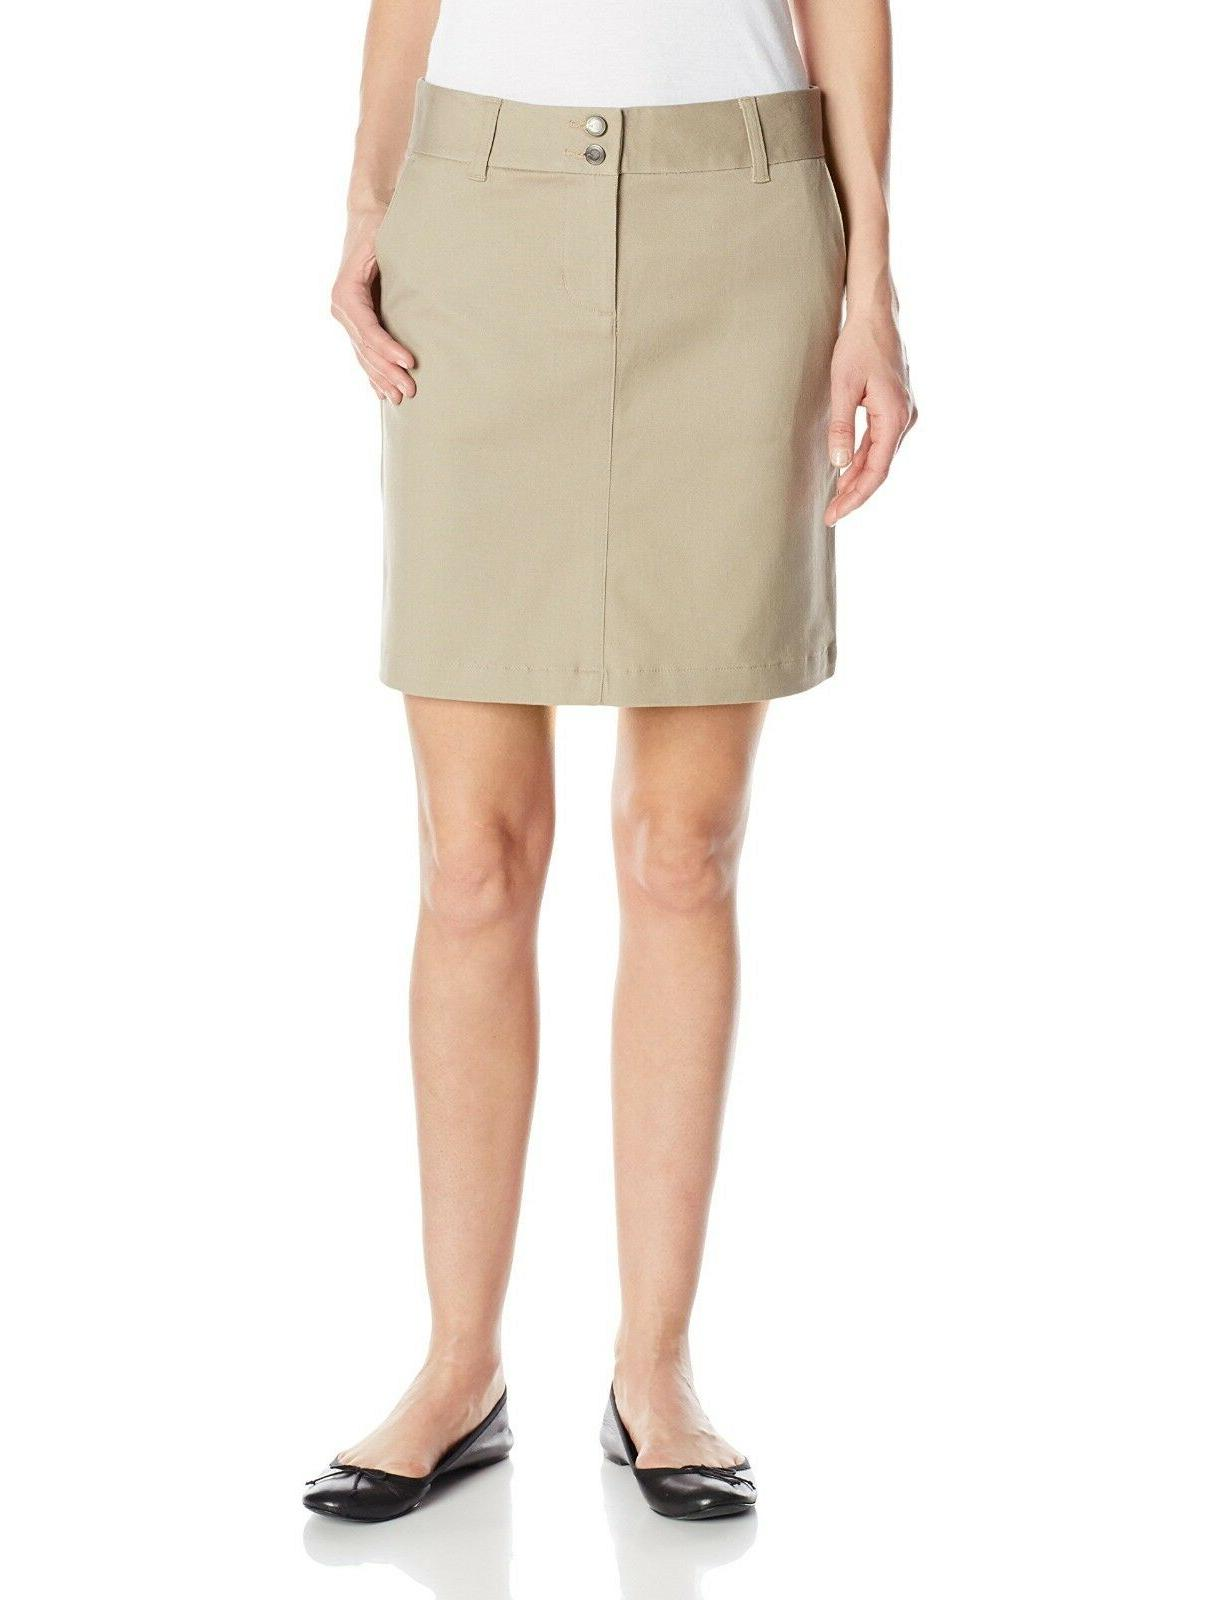 LEE Uniforms Juniors Classic Stretch School Skirt Khaki Size